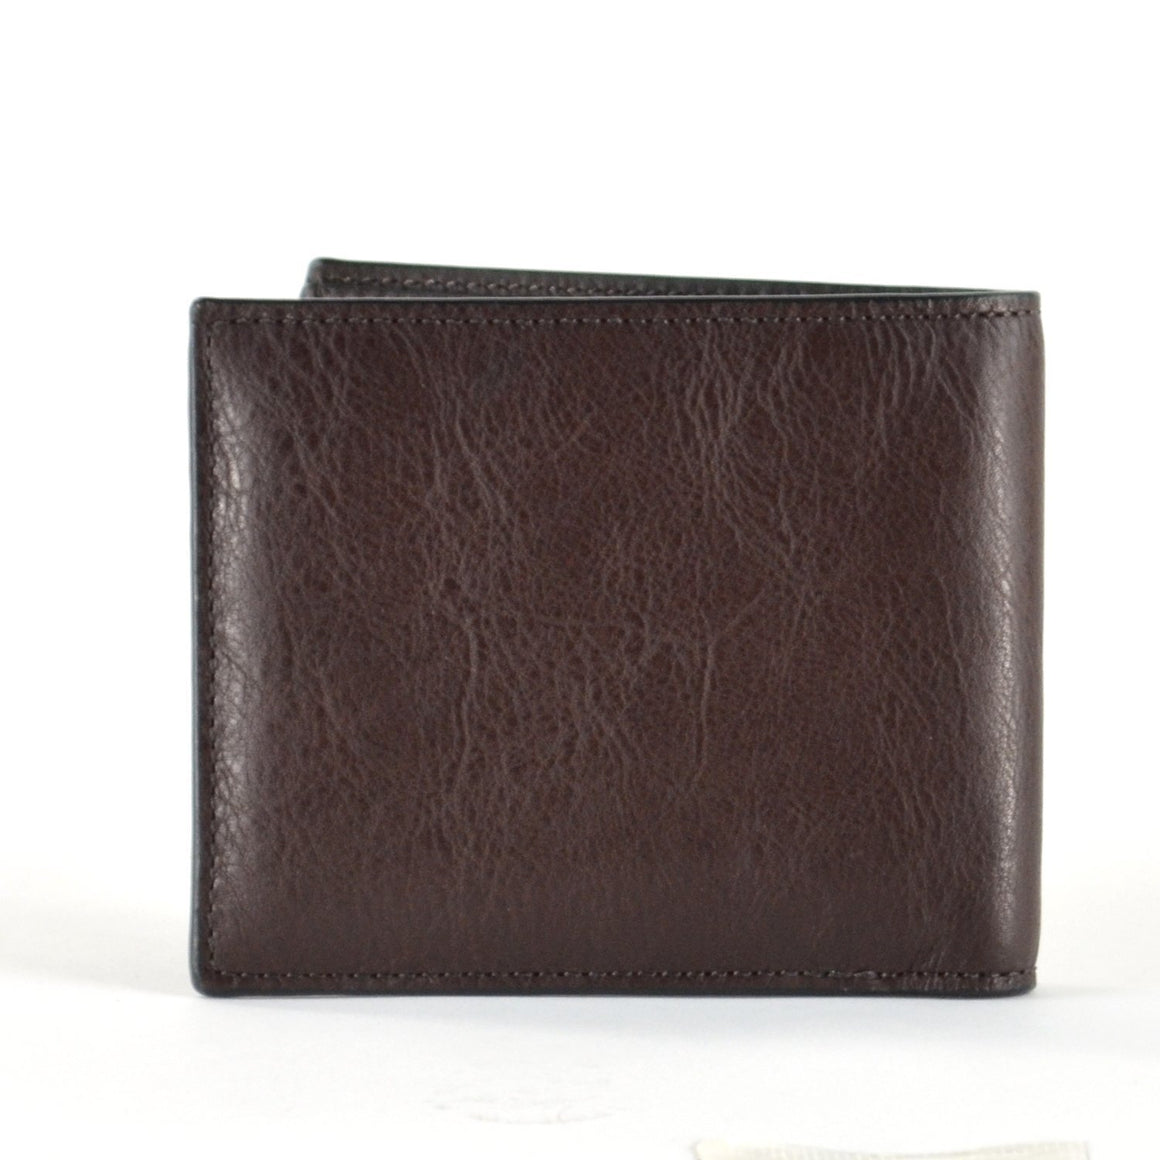 Compact Id Wallet In Sport Calf Leather (Coach F74991) Mahogany Mens Wallets Coach